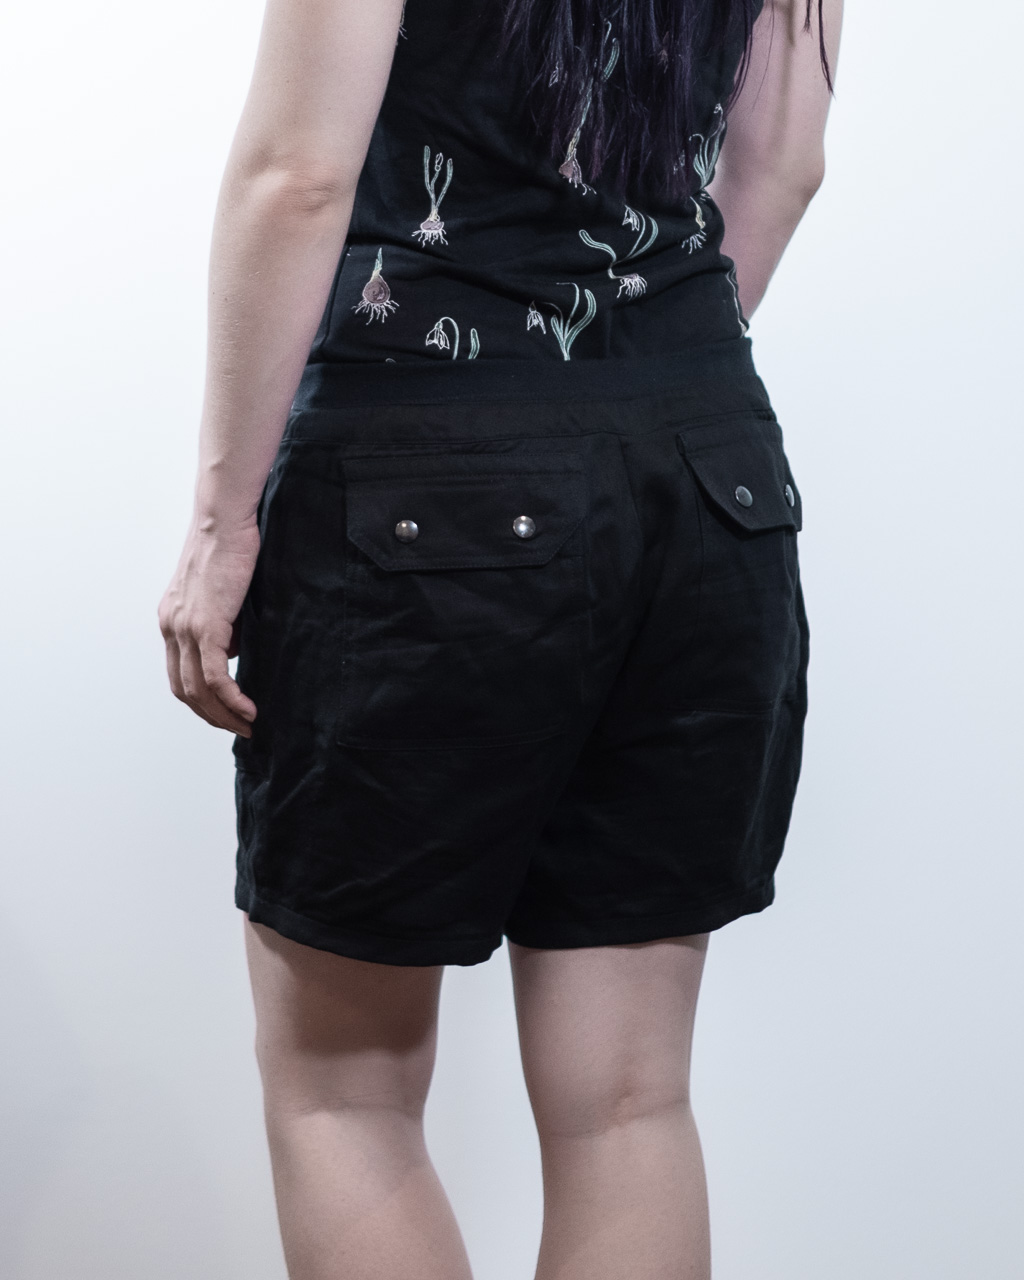 Sequoia Cargo Pants Shorts Sewing Pattern Itch to Stitch Indie Designer Minn's Things back full butt